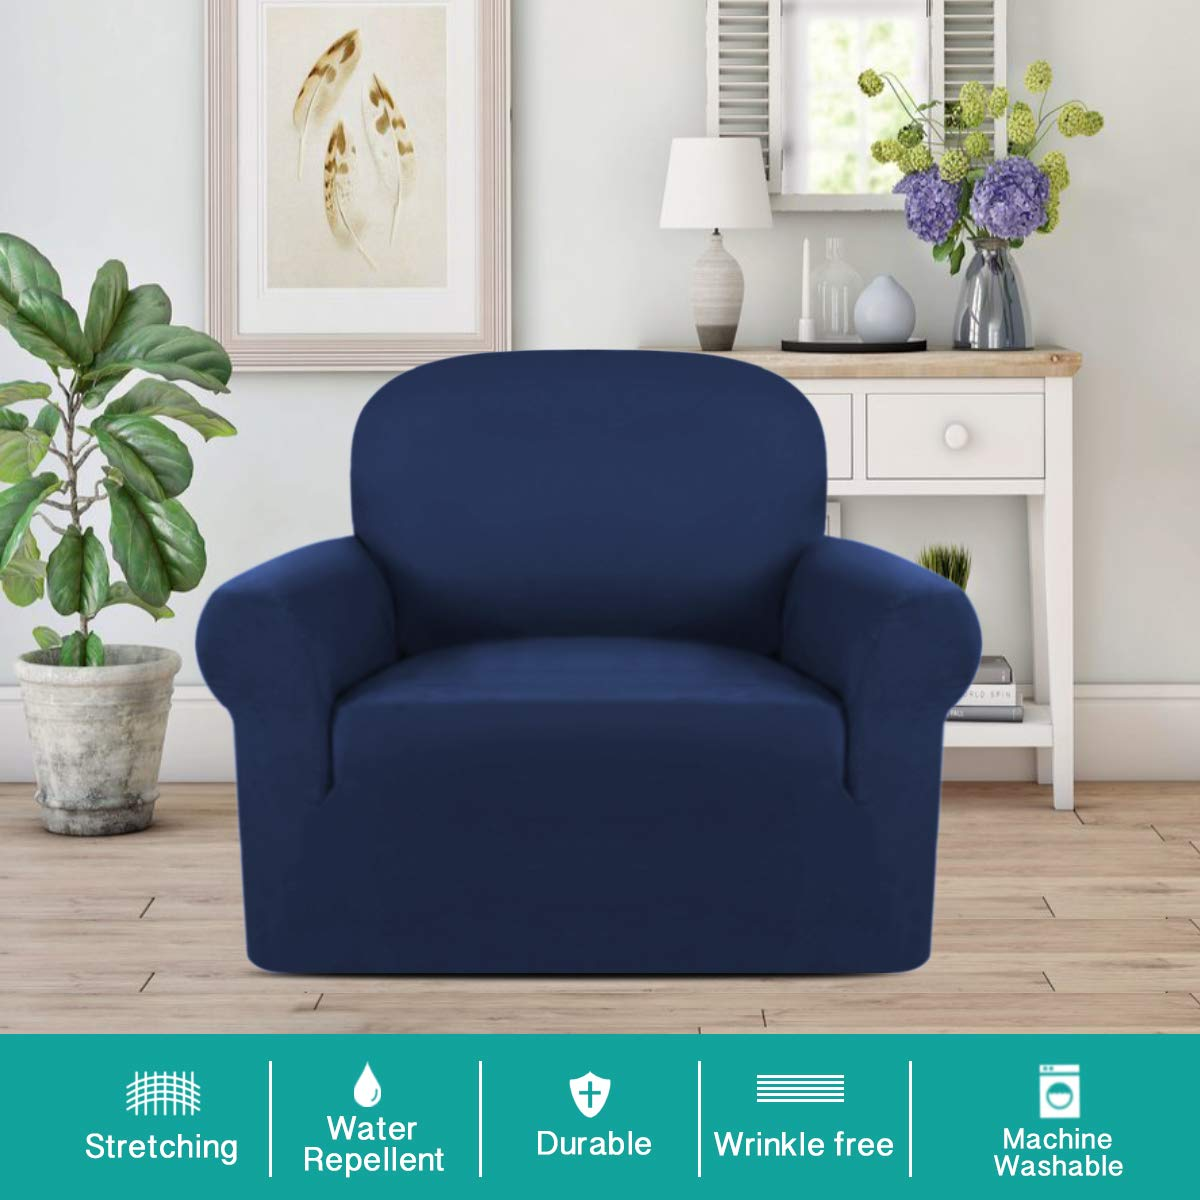 One Seater Chair Slipcover Water Repellent Covers for Living Room Chair Cover Strapless(Chair, Navy)